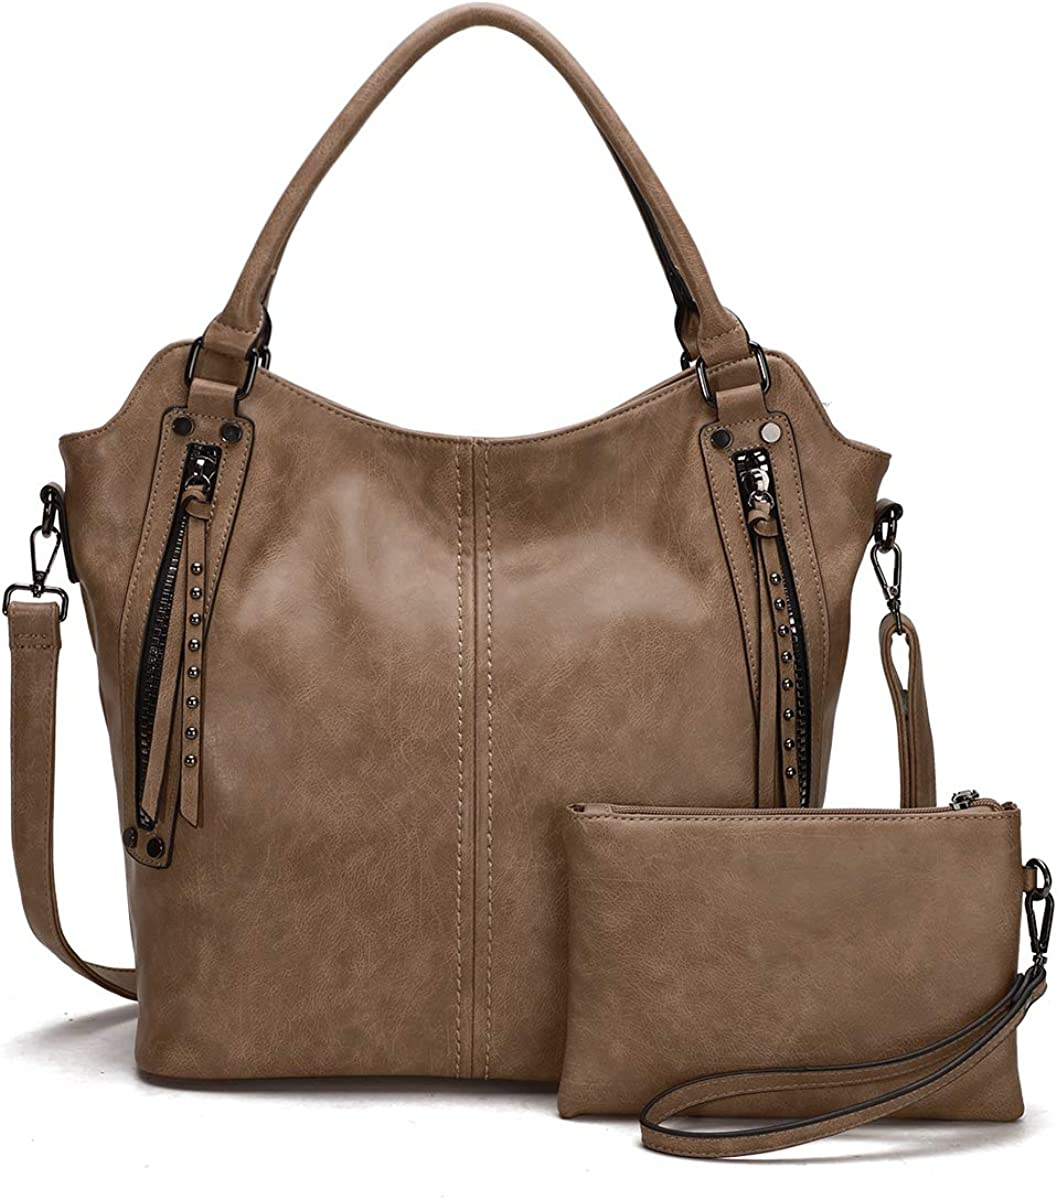 KL928 Womens Purses and Handbags Large Tote Satchel bags PU Leather Hobo Bag for Women